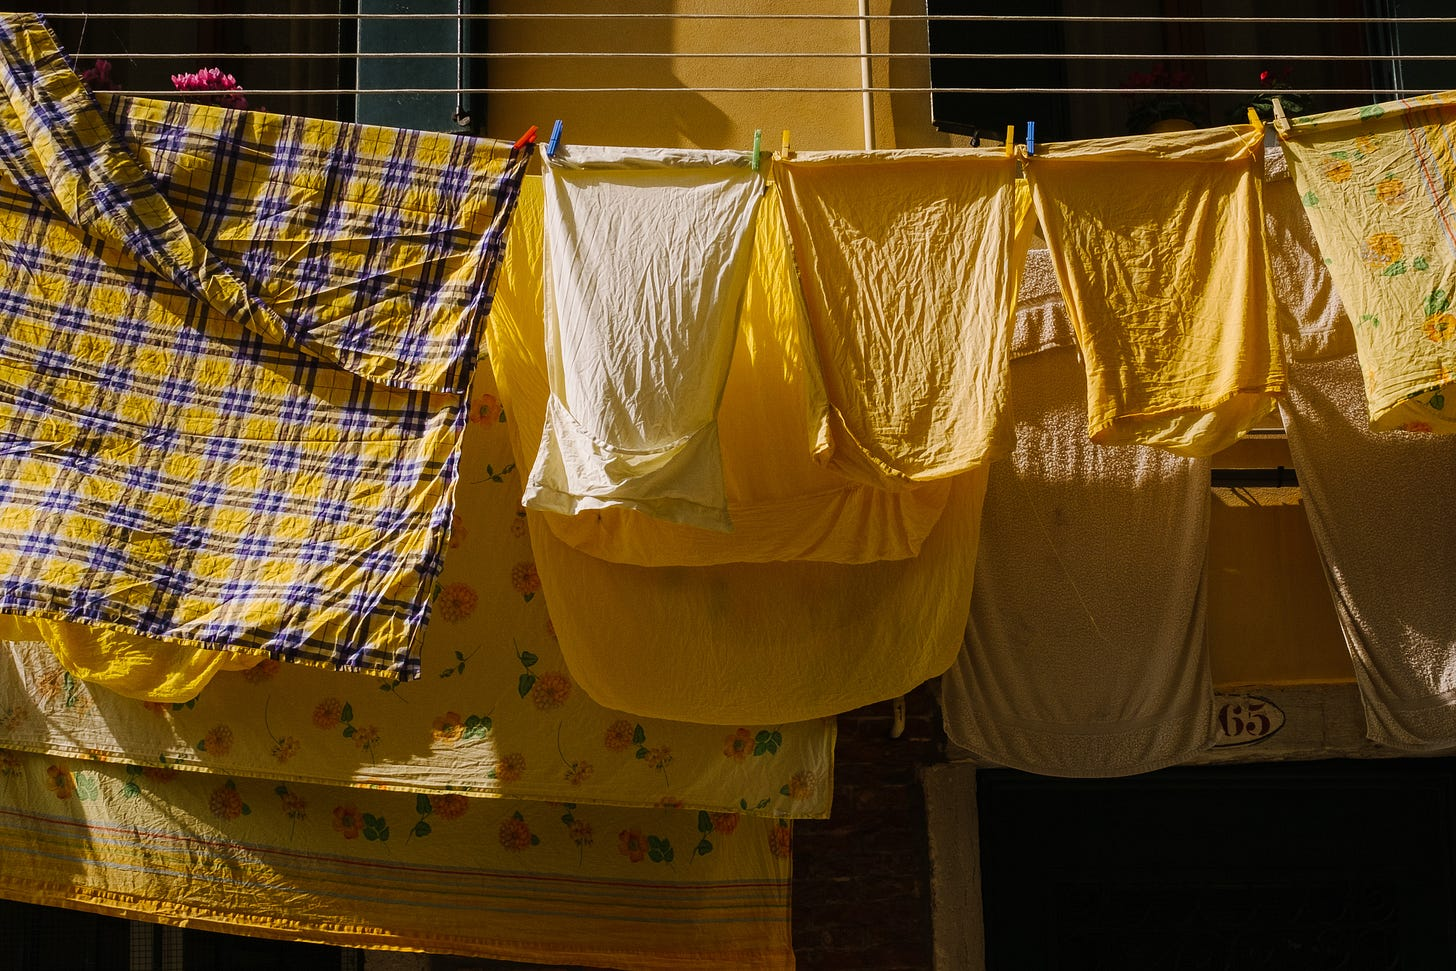 11-venice-washing-lines-7809-pete-carr.jpg